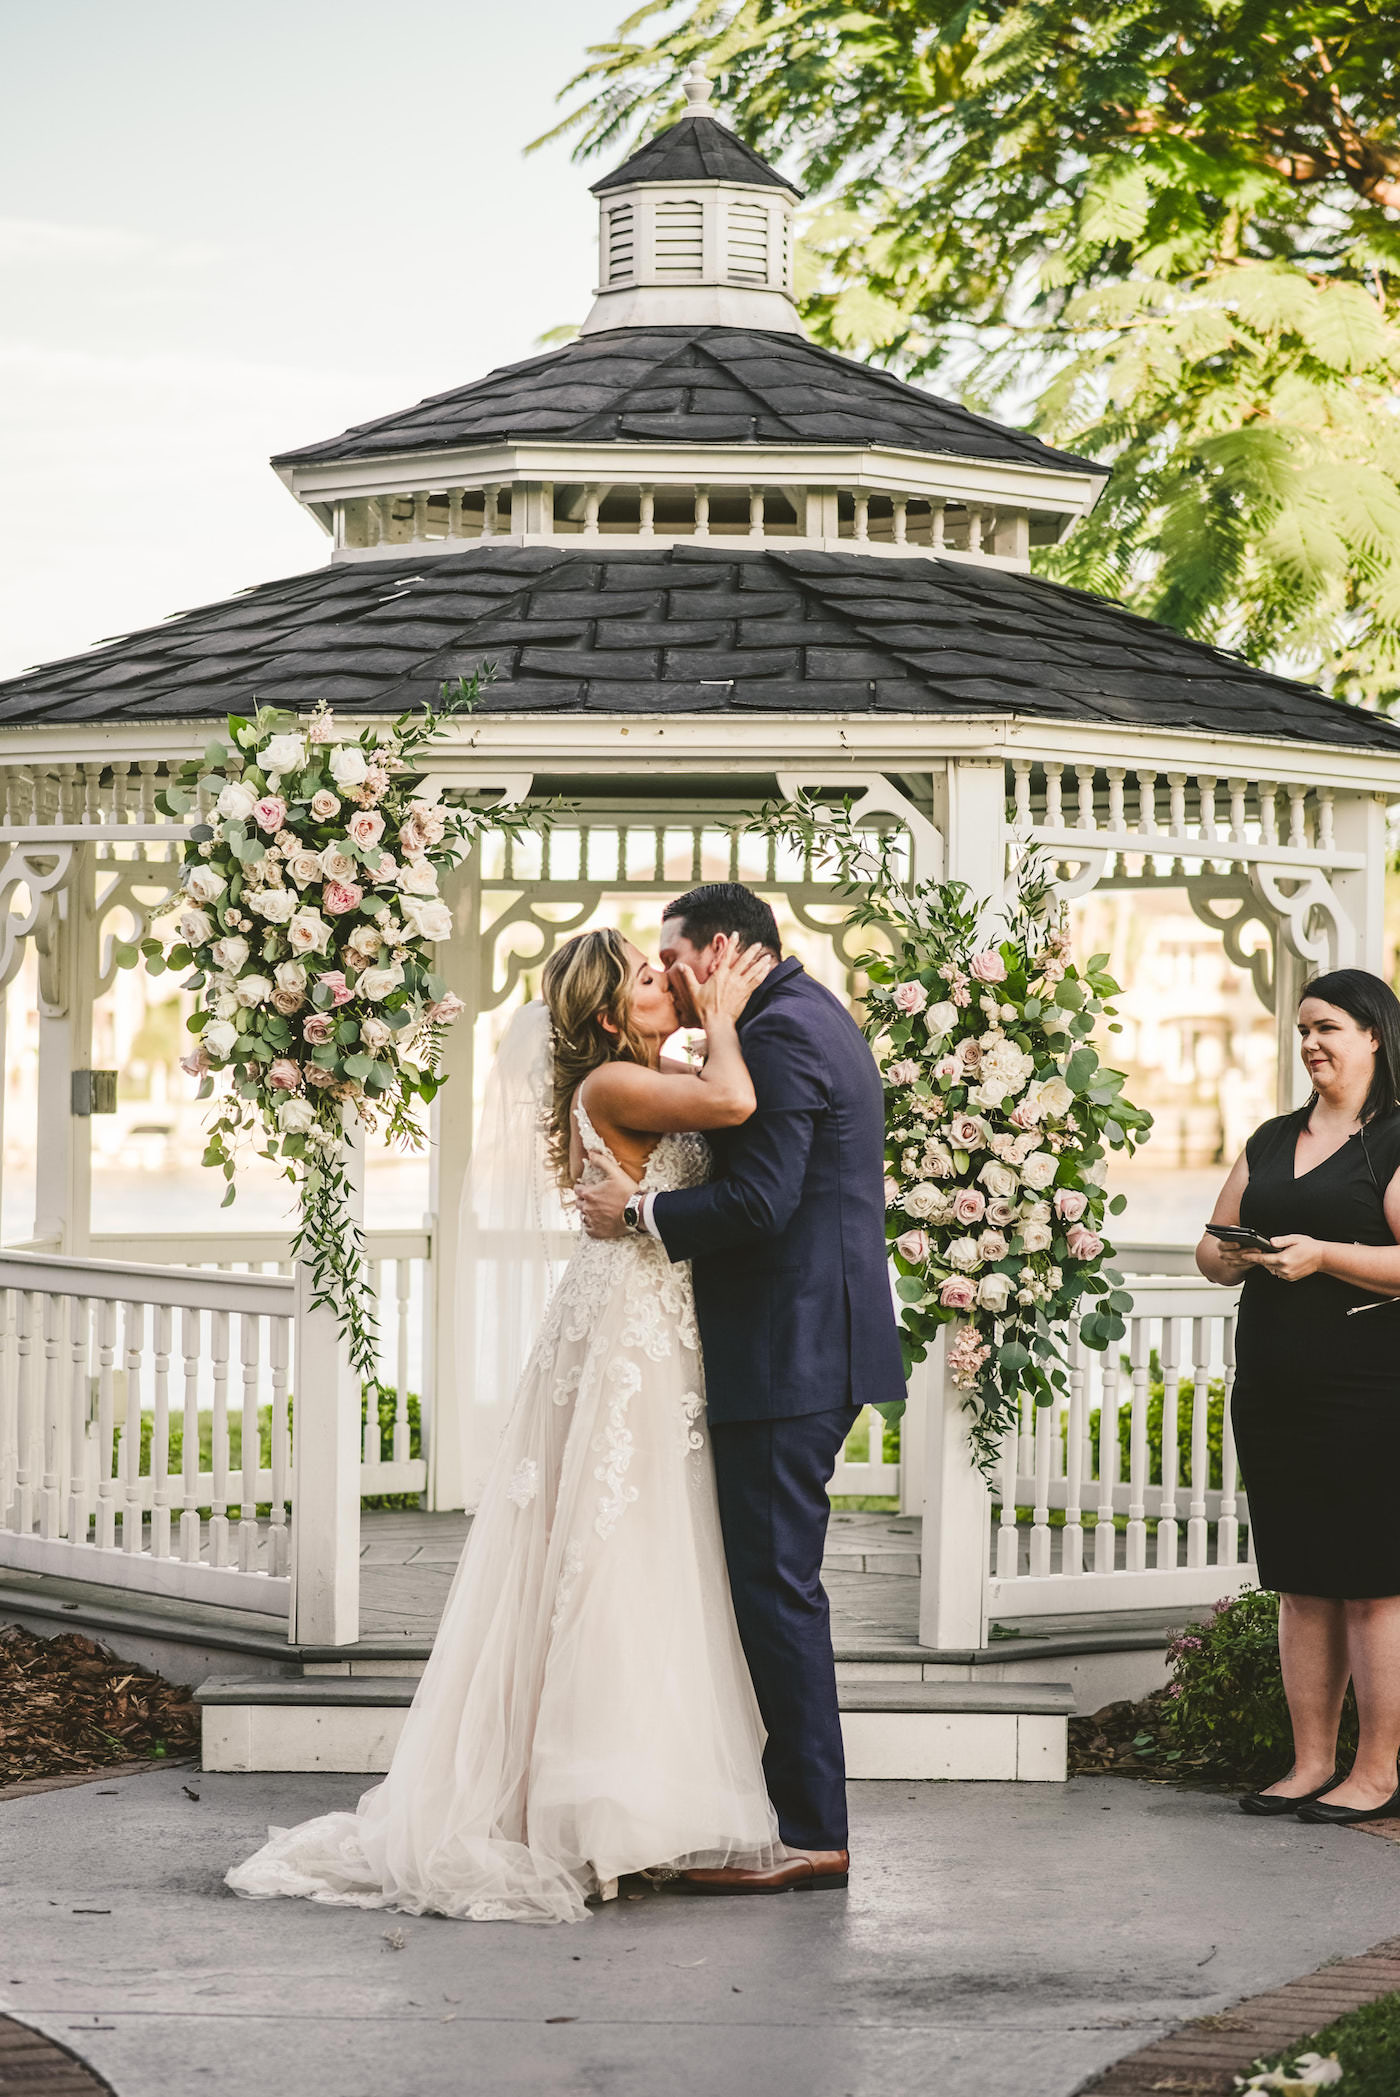 Bride and Groom First Kiss at Tampa Waterfront Garden Venue with Gazebo Backdrop and White and Blush Pink Rose and Greenery Floral Arrangements